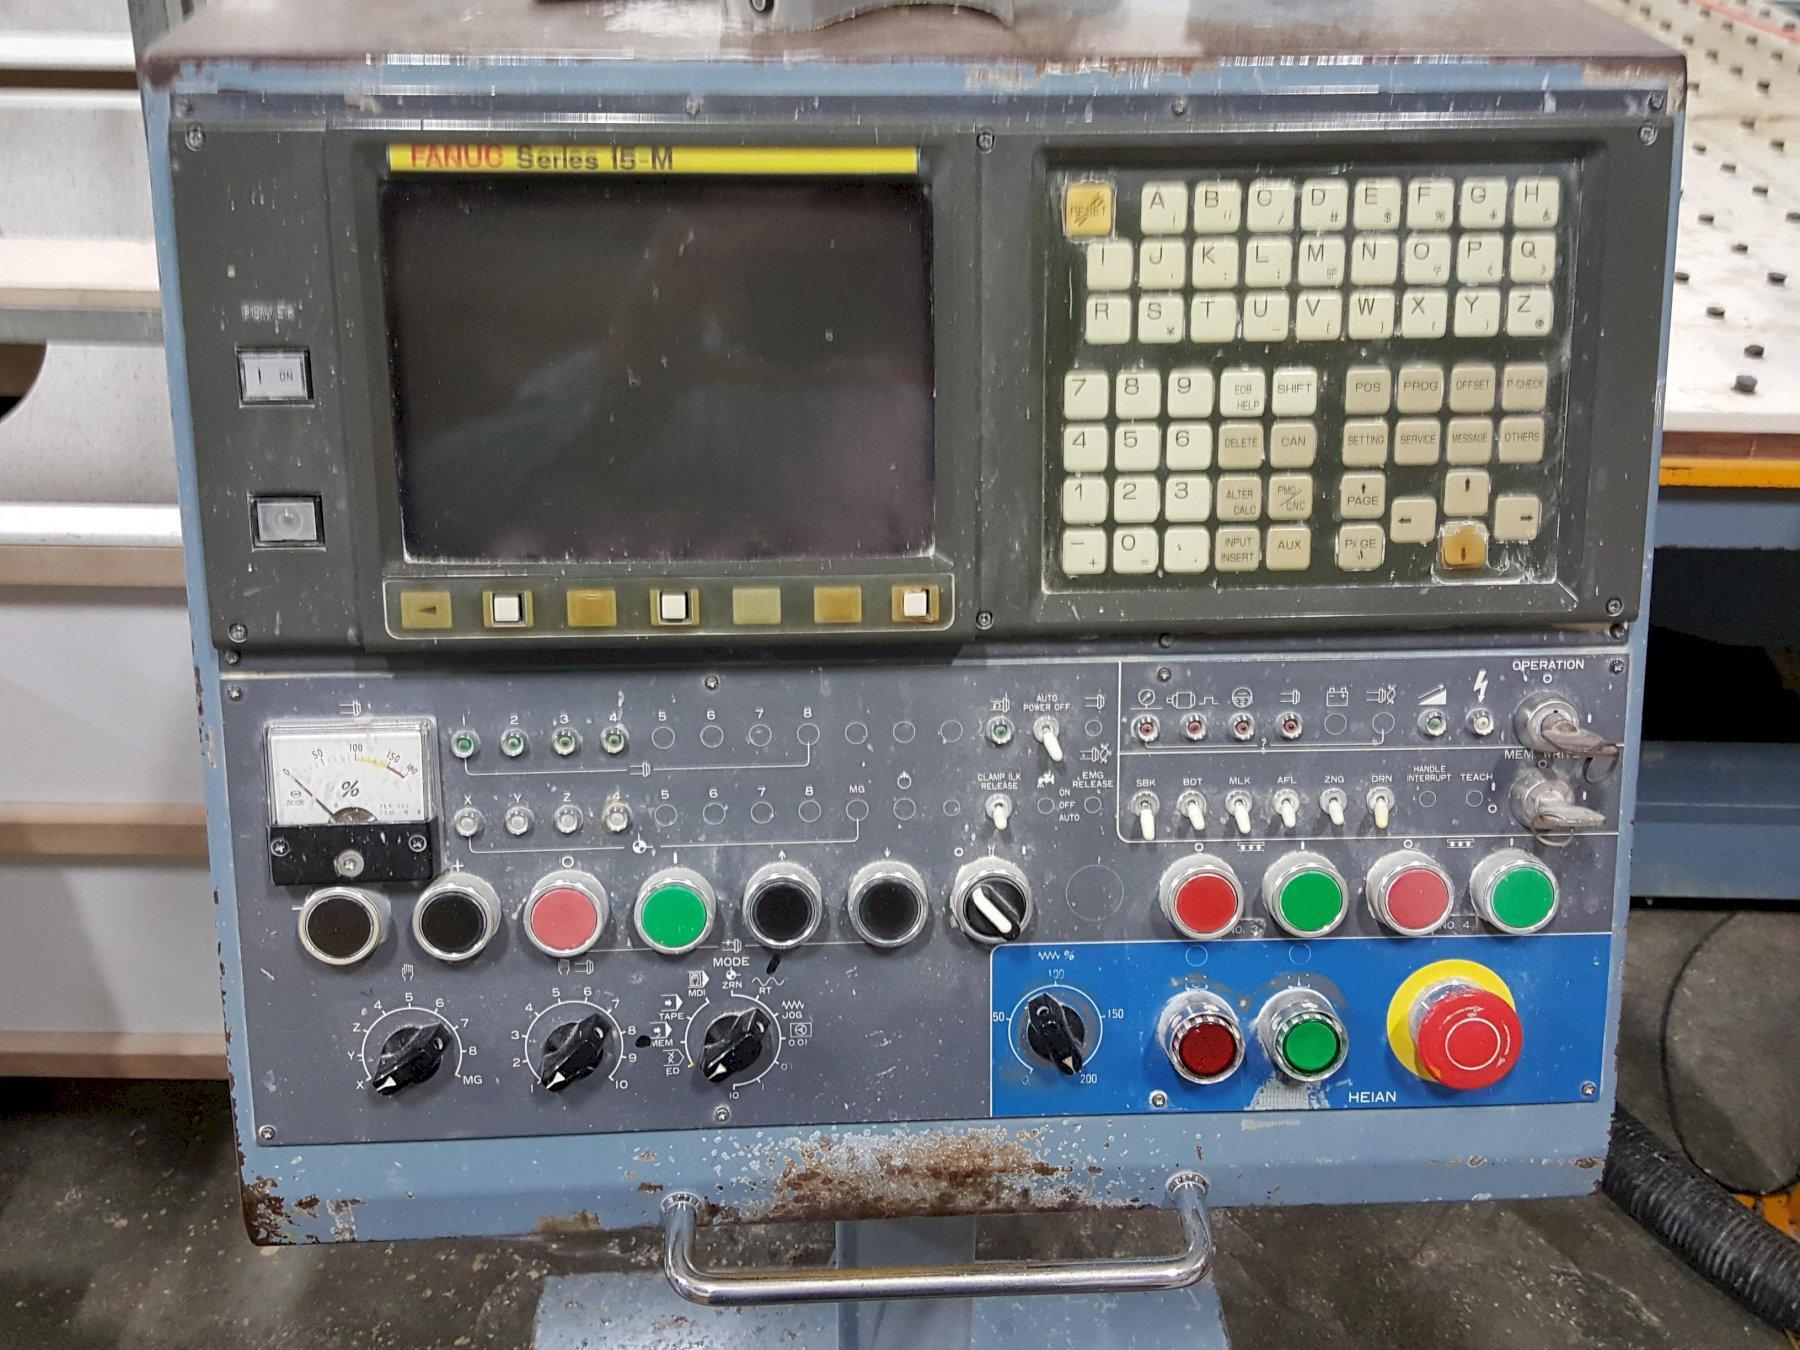 HEIAN MODEL #ZR-442P CNC 4 SPINDLE TWIN MOVING MATRIX TABLE ROUTER: STOCK 13639